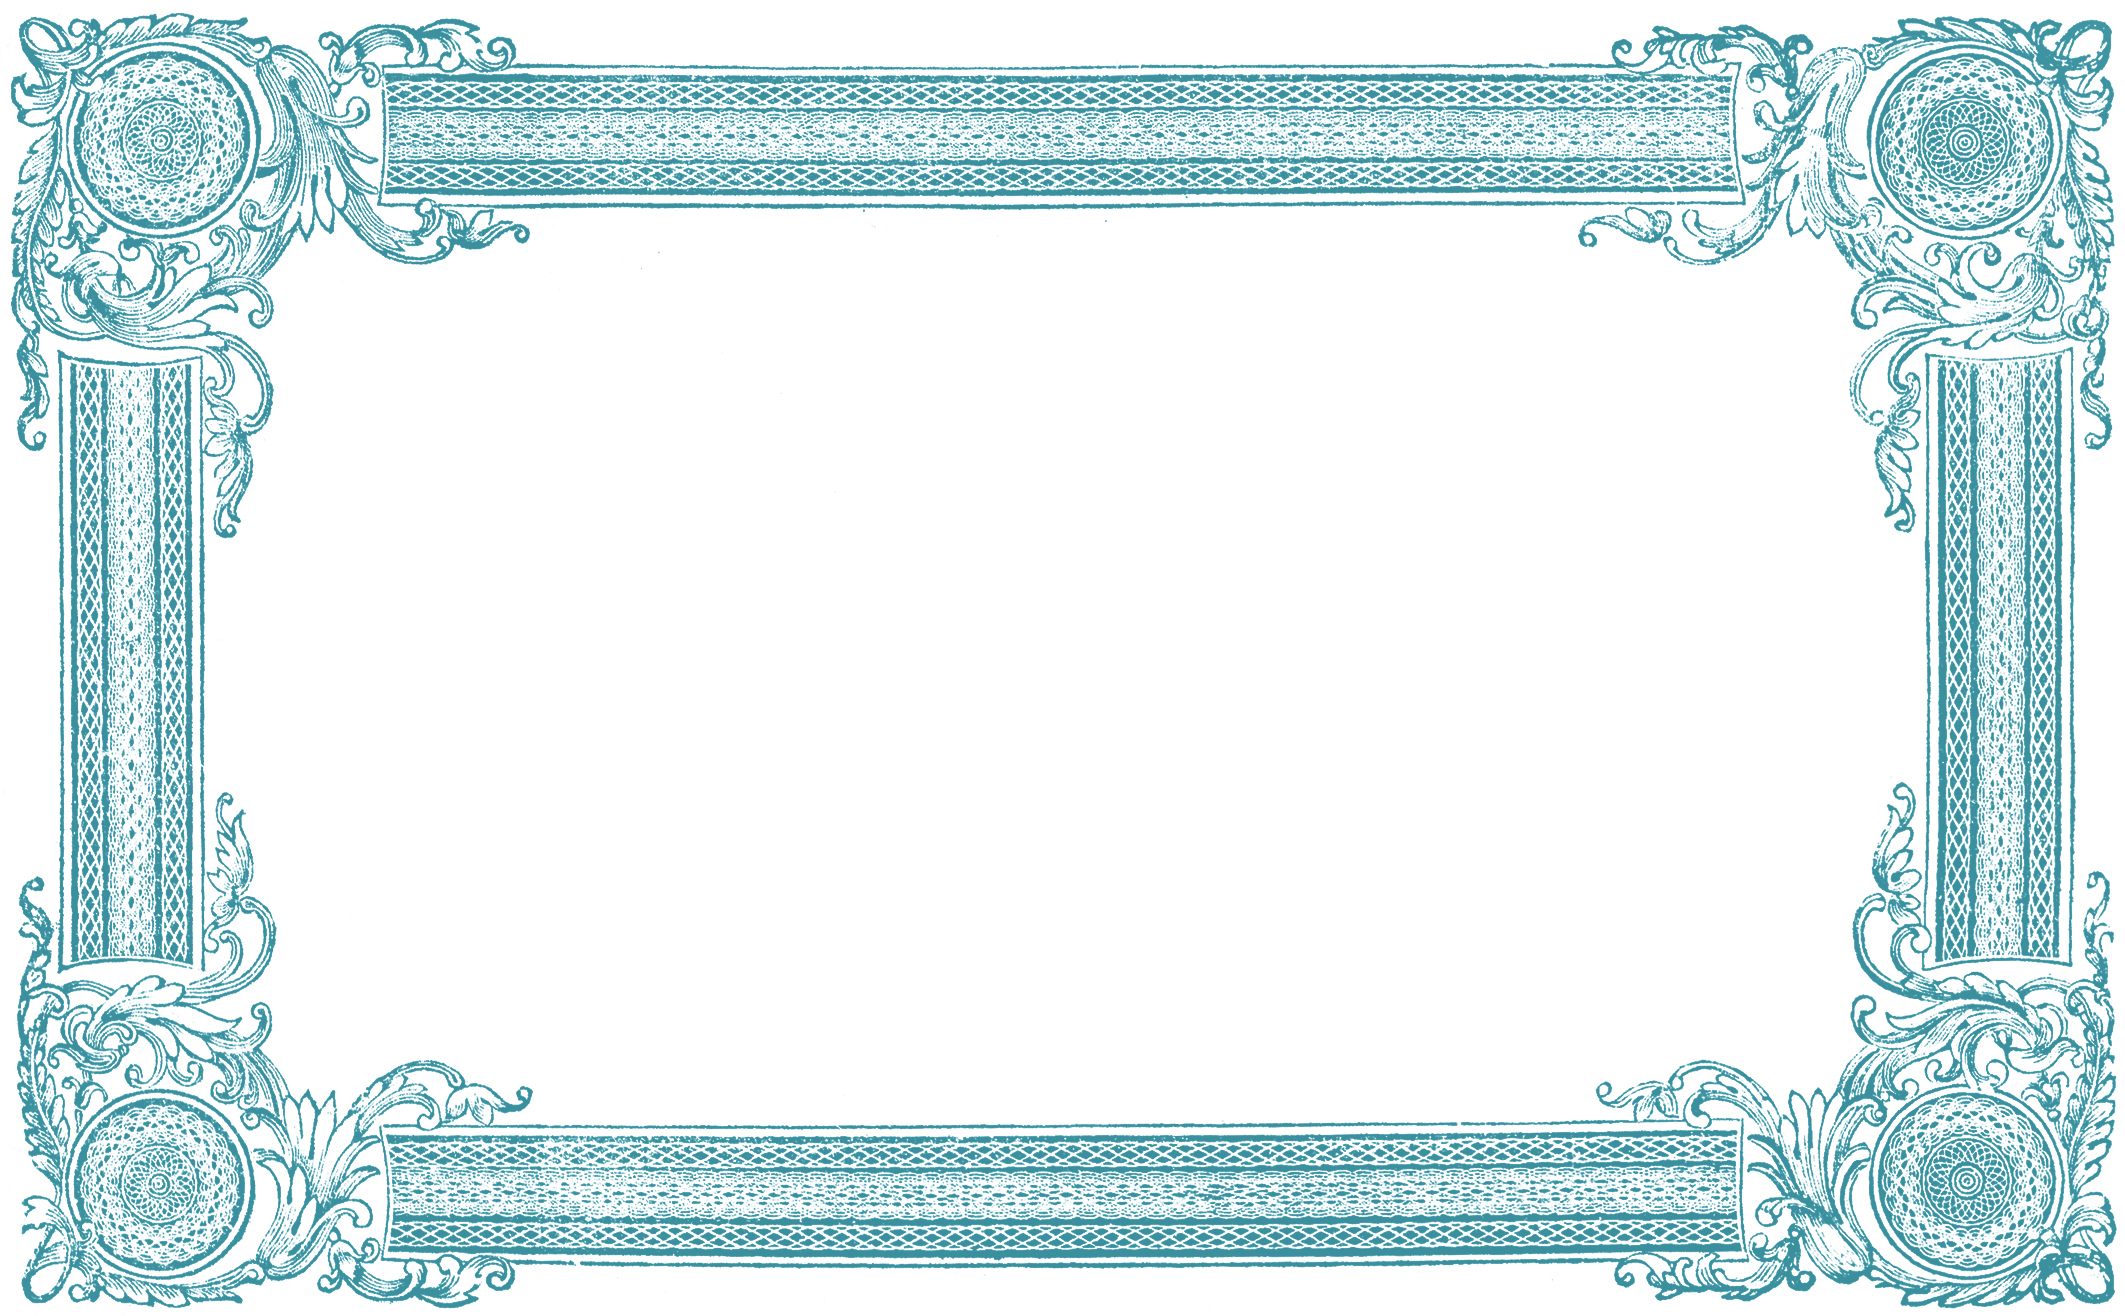 free frame clip art images the graphics fairy rh thegraphicsfairy com photo frame clipart free photo frame clipart free